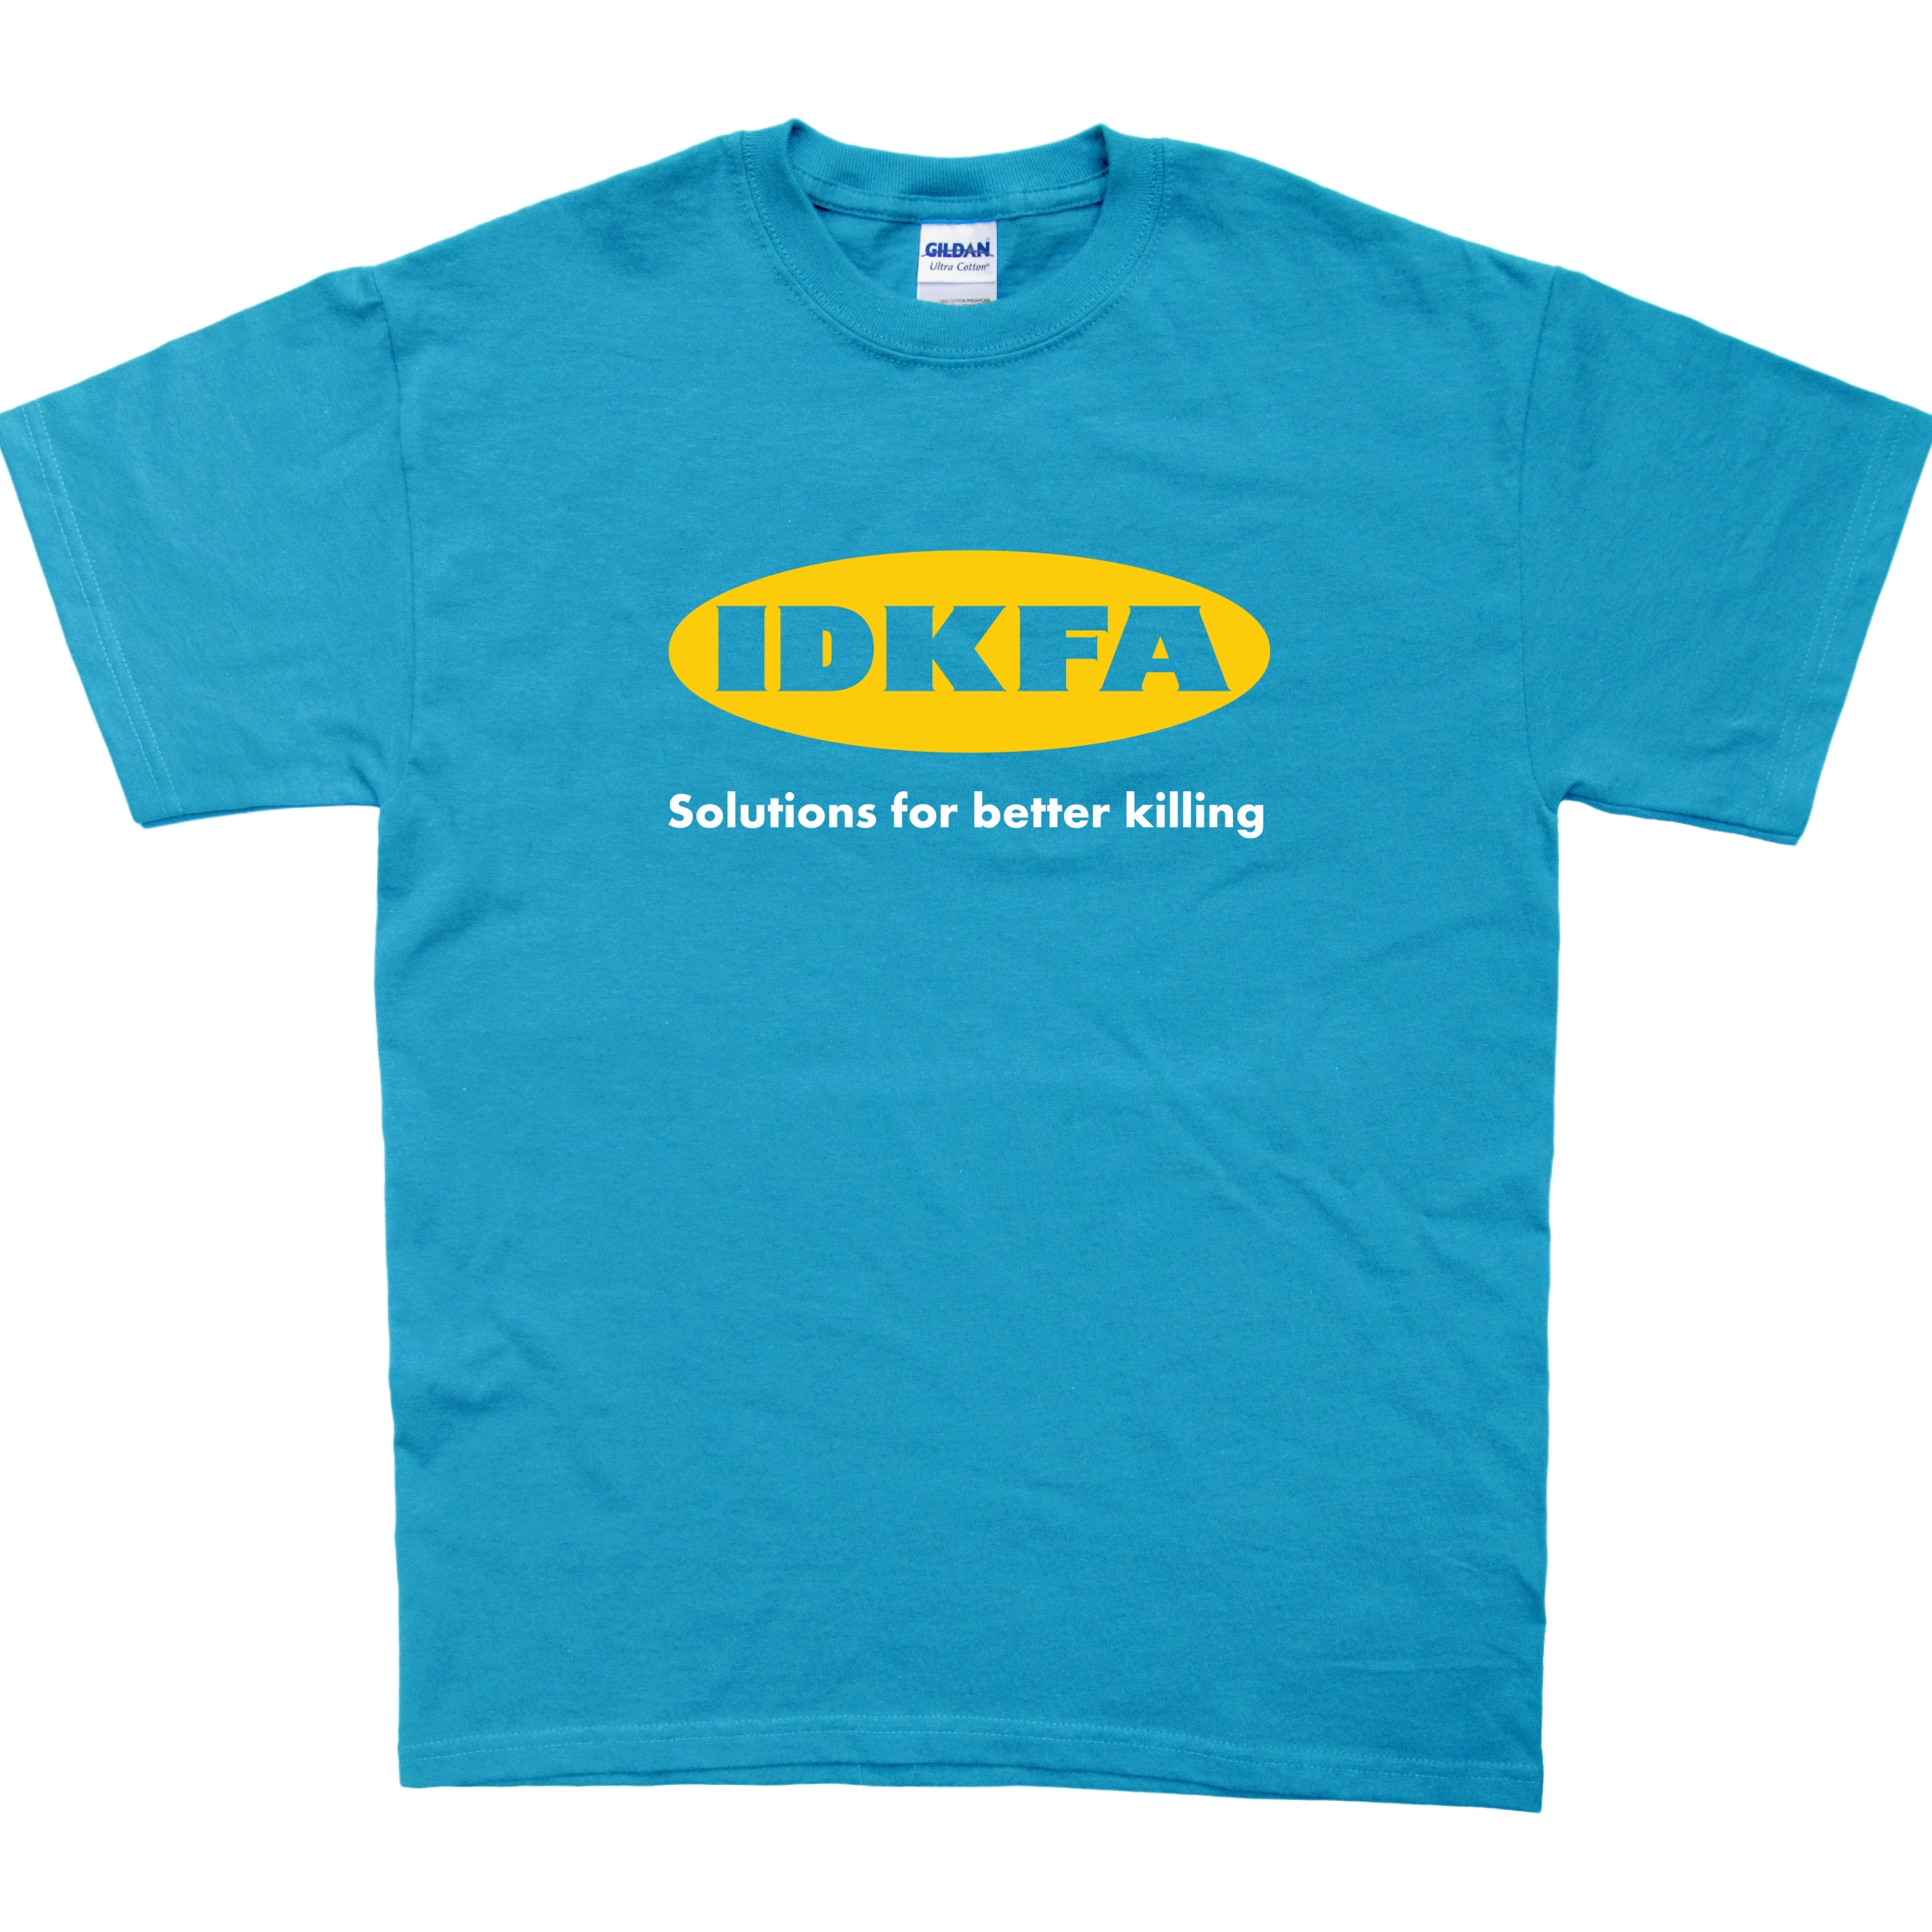 Alternative photo: IDKFA T-shirt